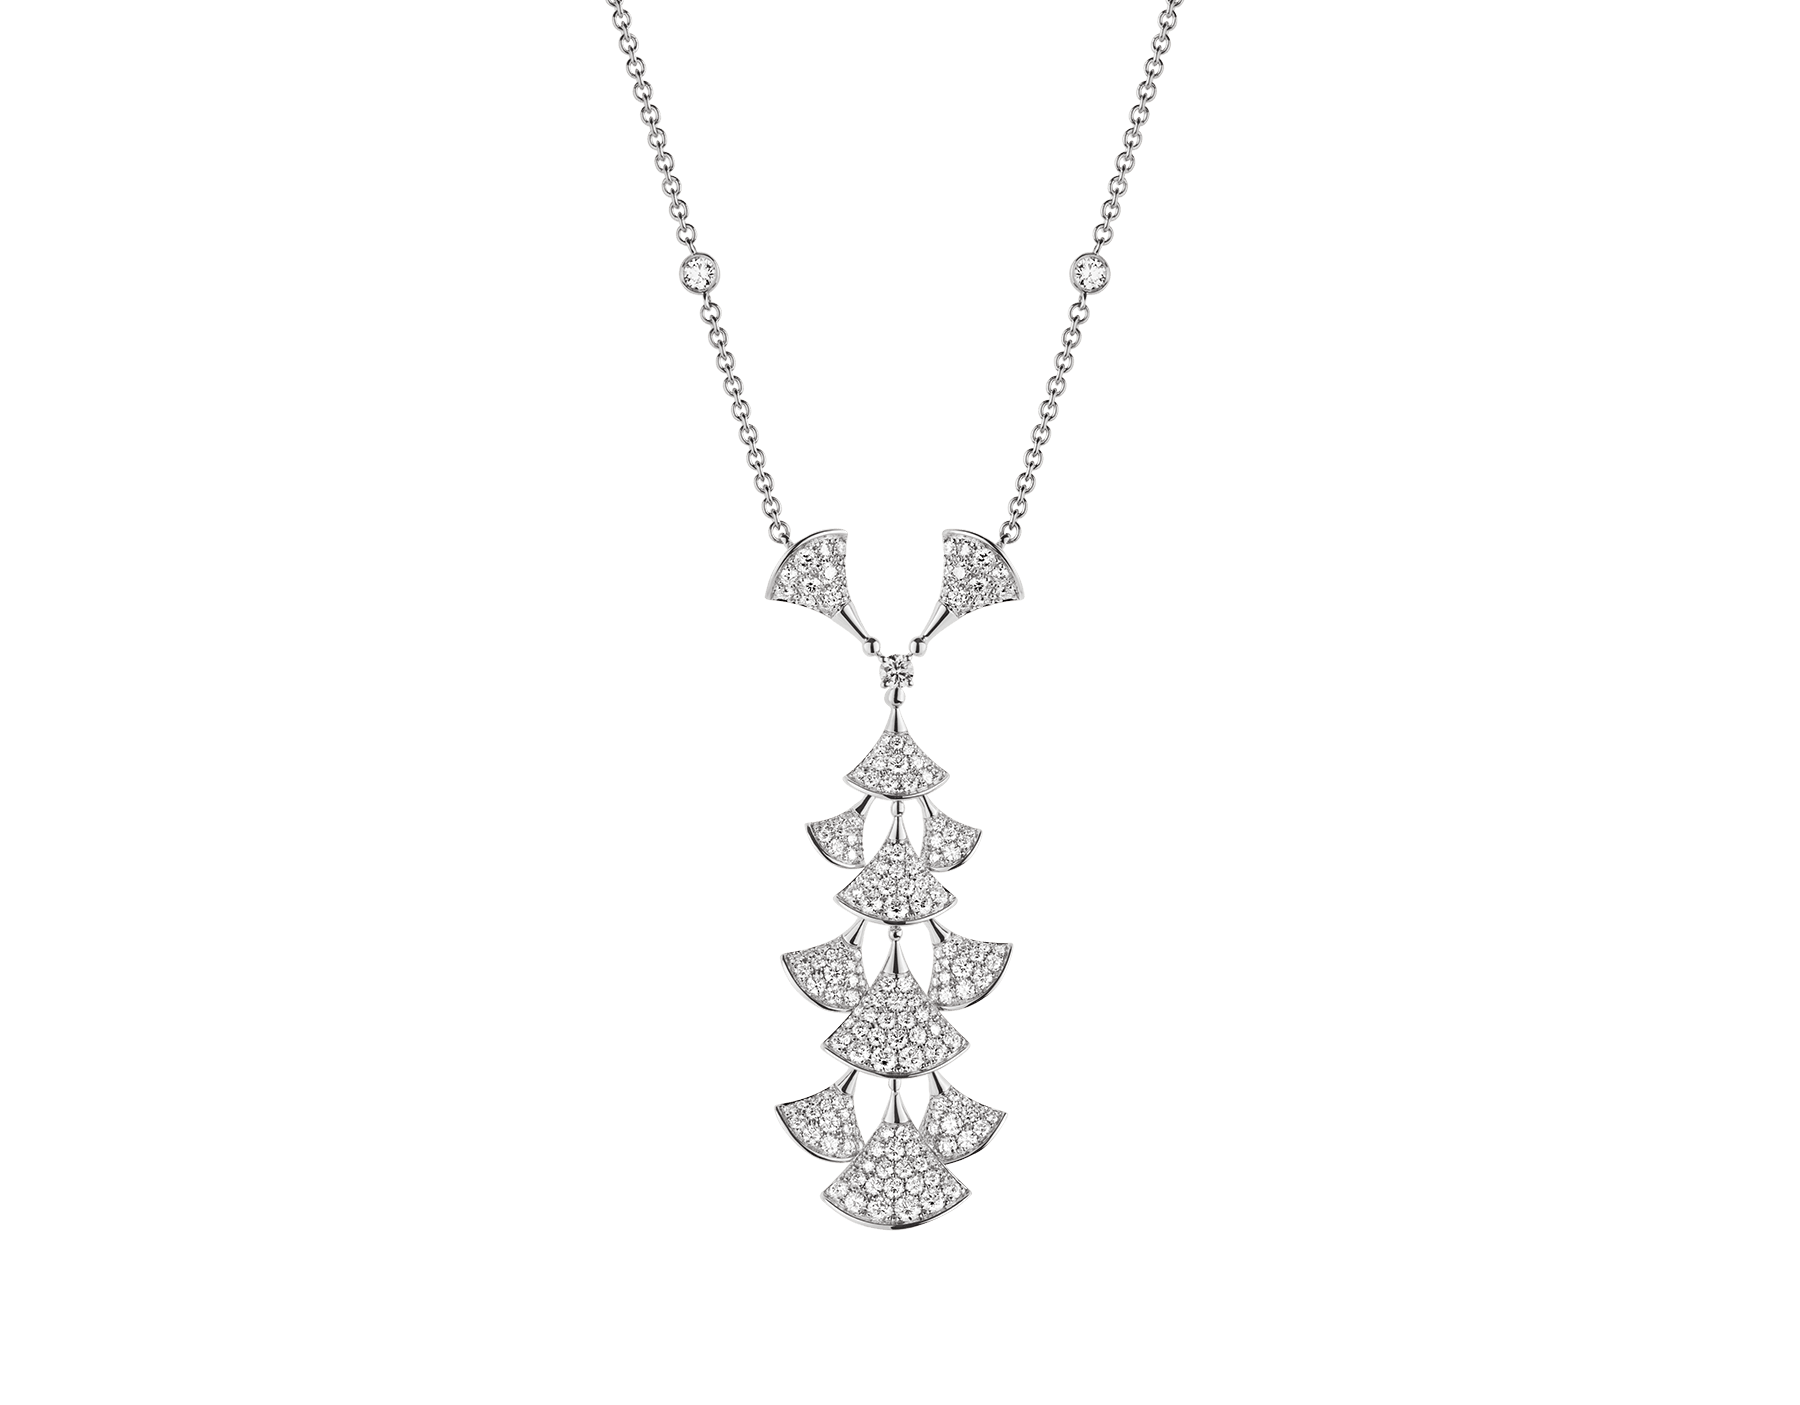 DIVAS' DREAM 18 kt white gold necklace set with diamonds and full pavé diamonds. 352608 image 1